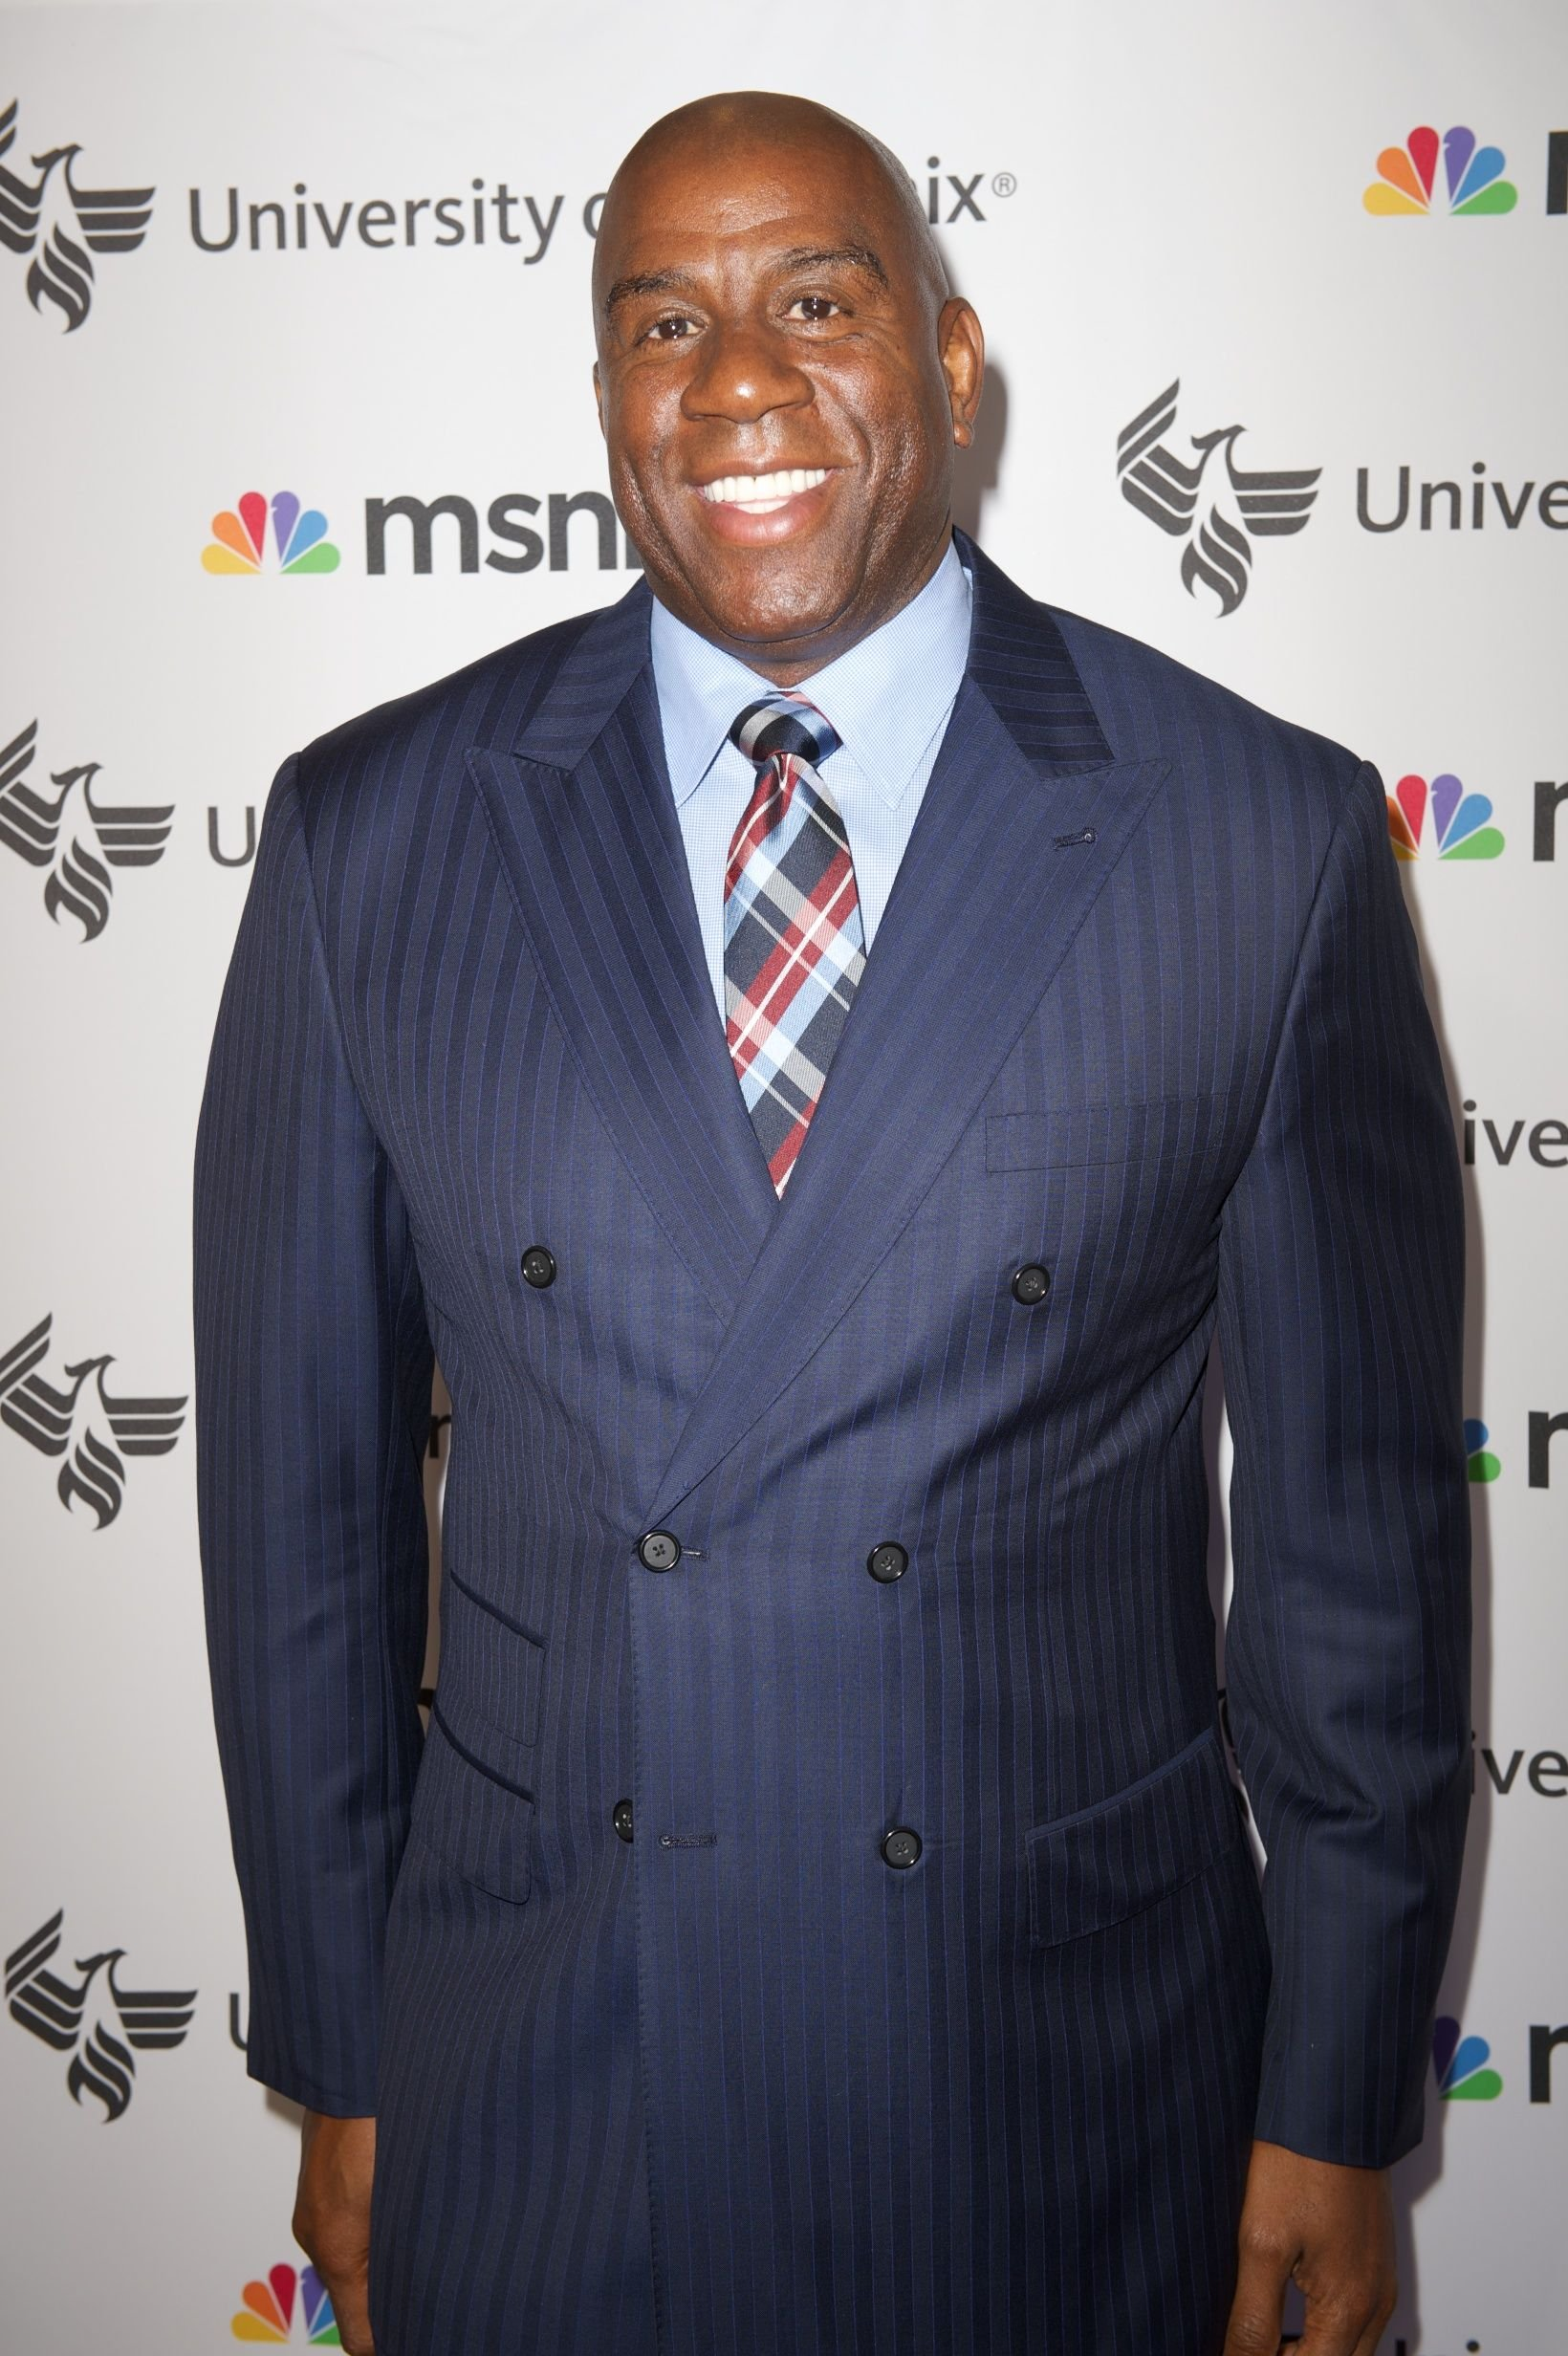 A picture of NBA legend Magic Johnson | Photo: Getty Images